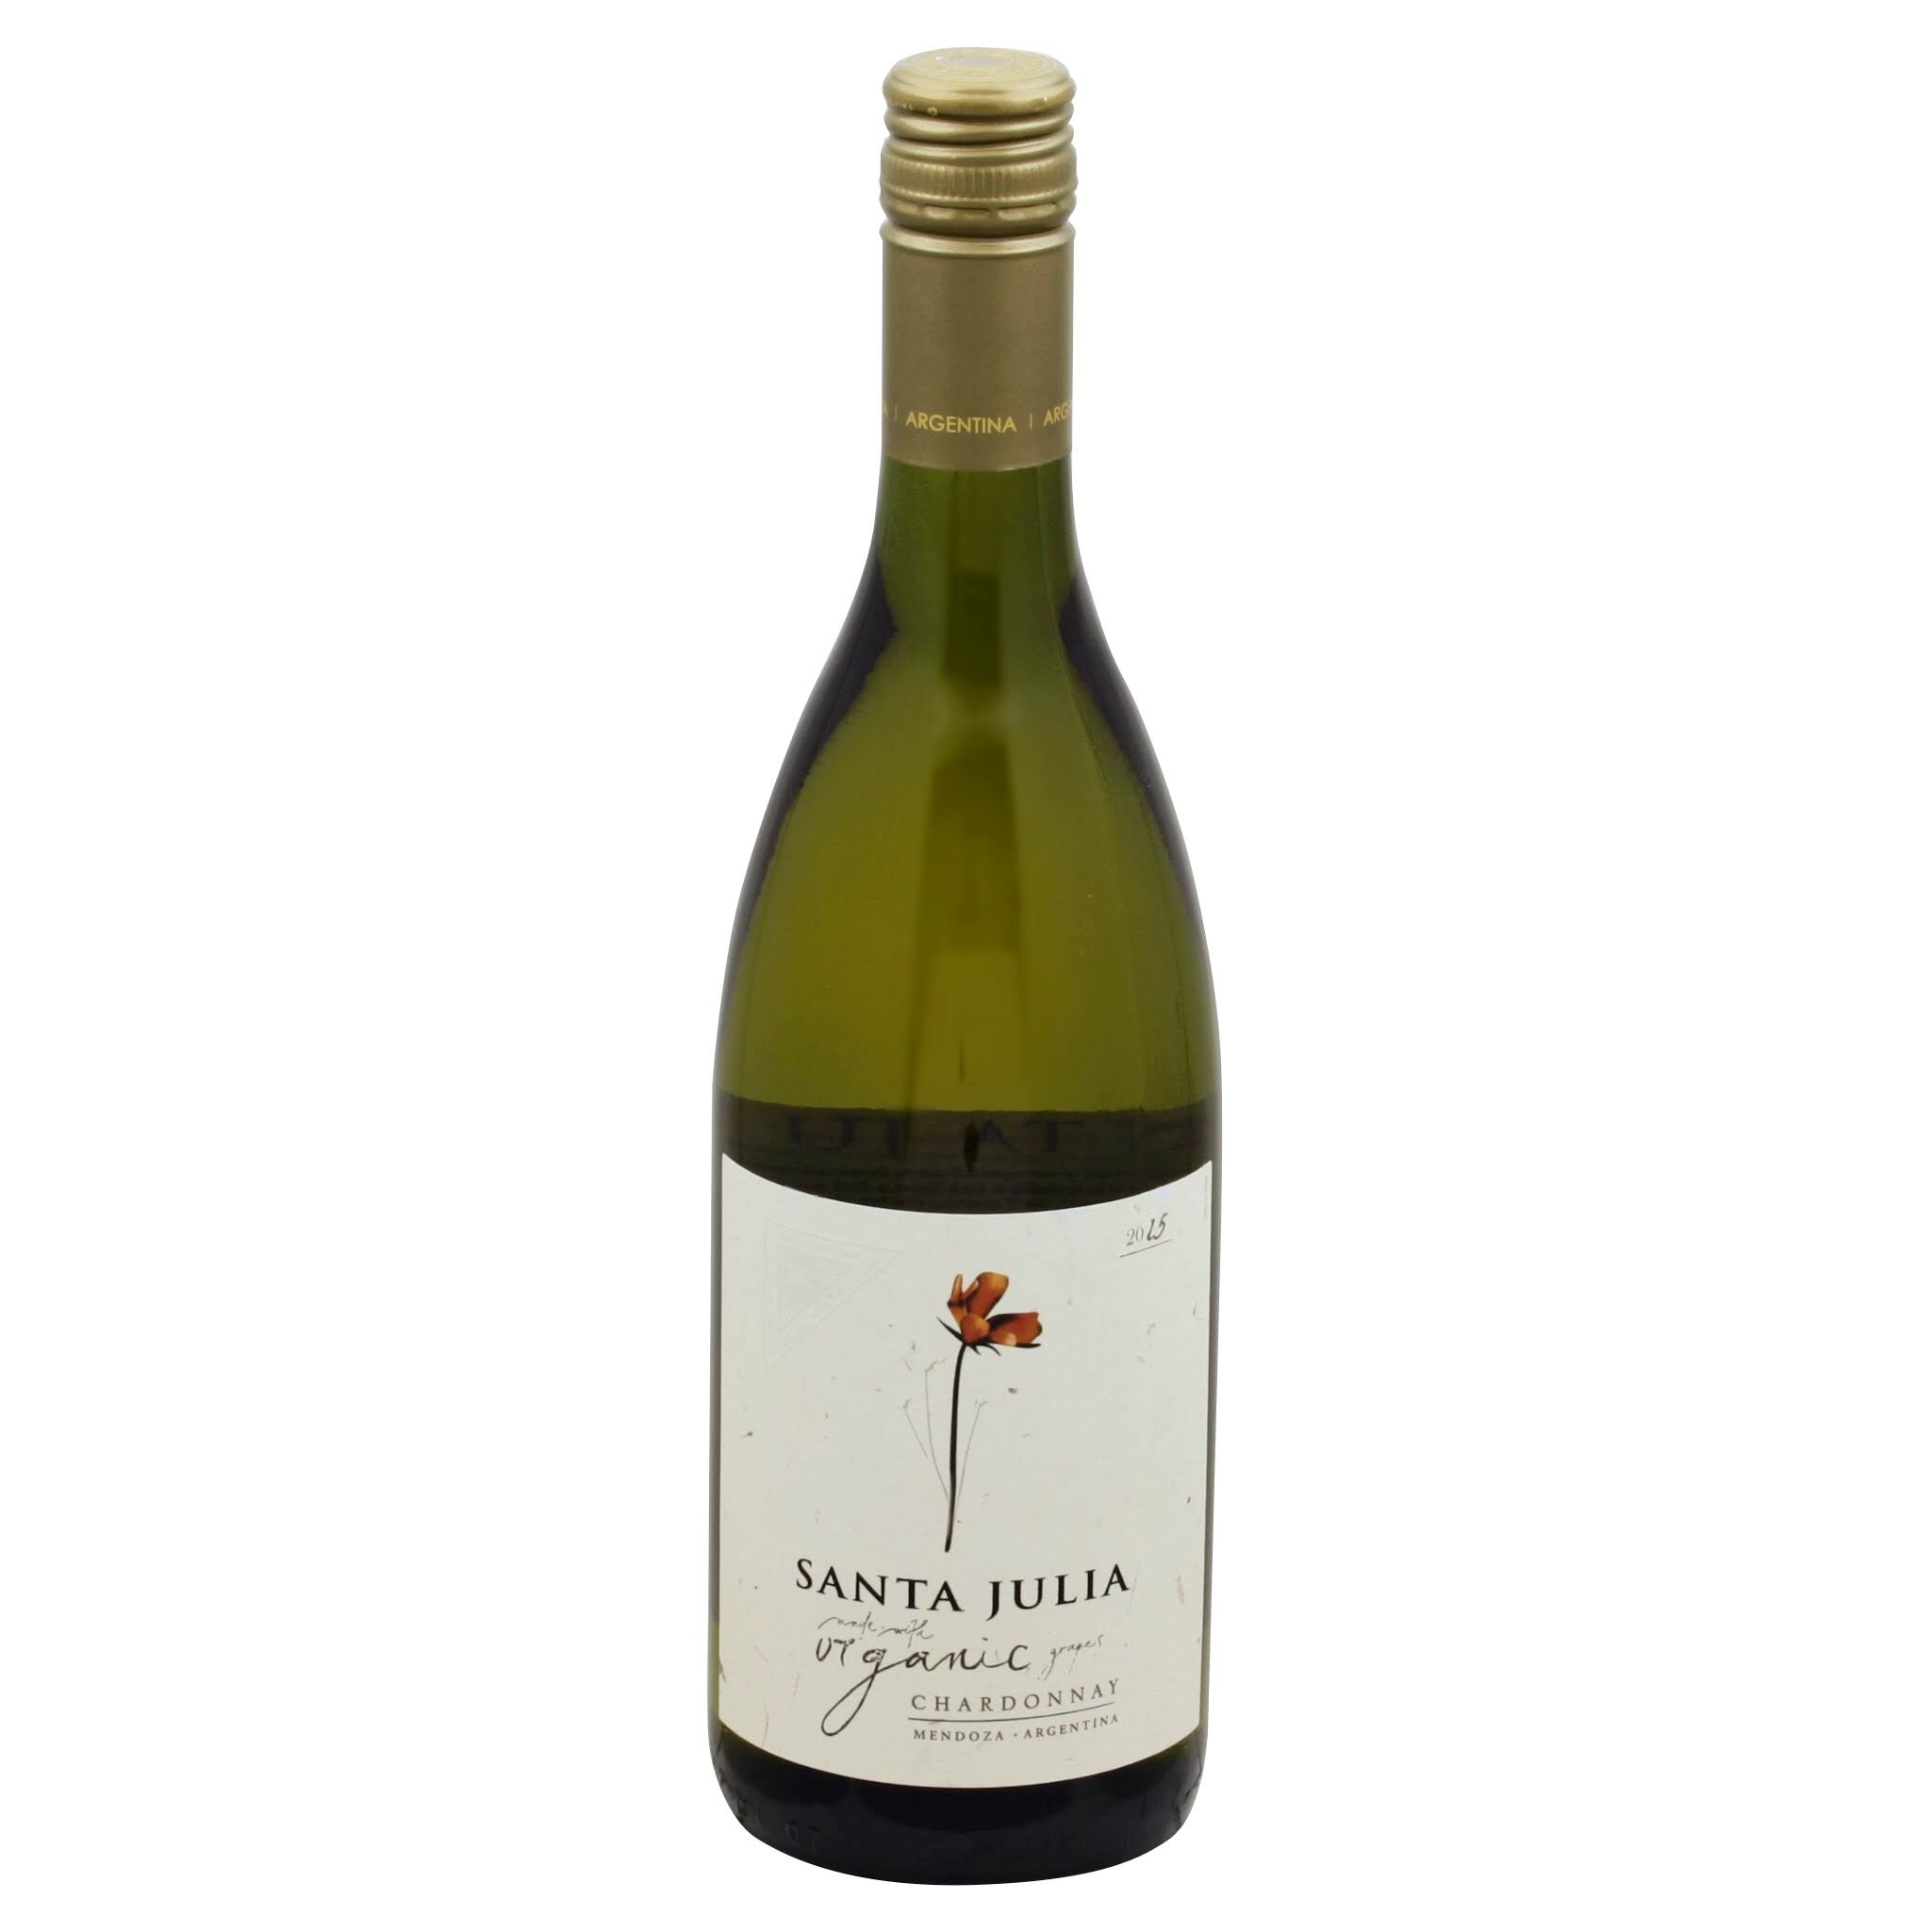 Santa Julia Chardonnay, Mendoza (Vintage Varies) - 750 ml bottle